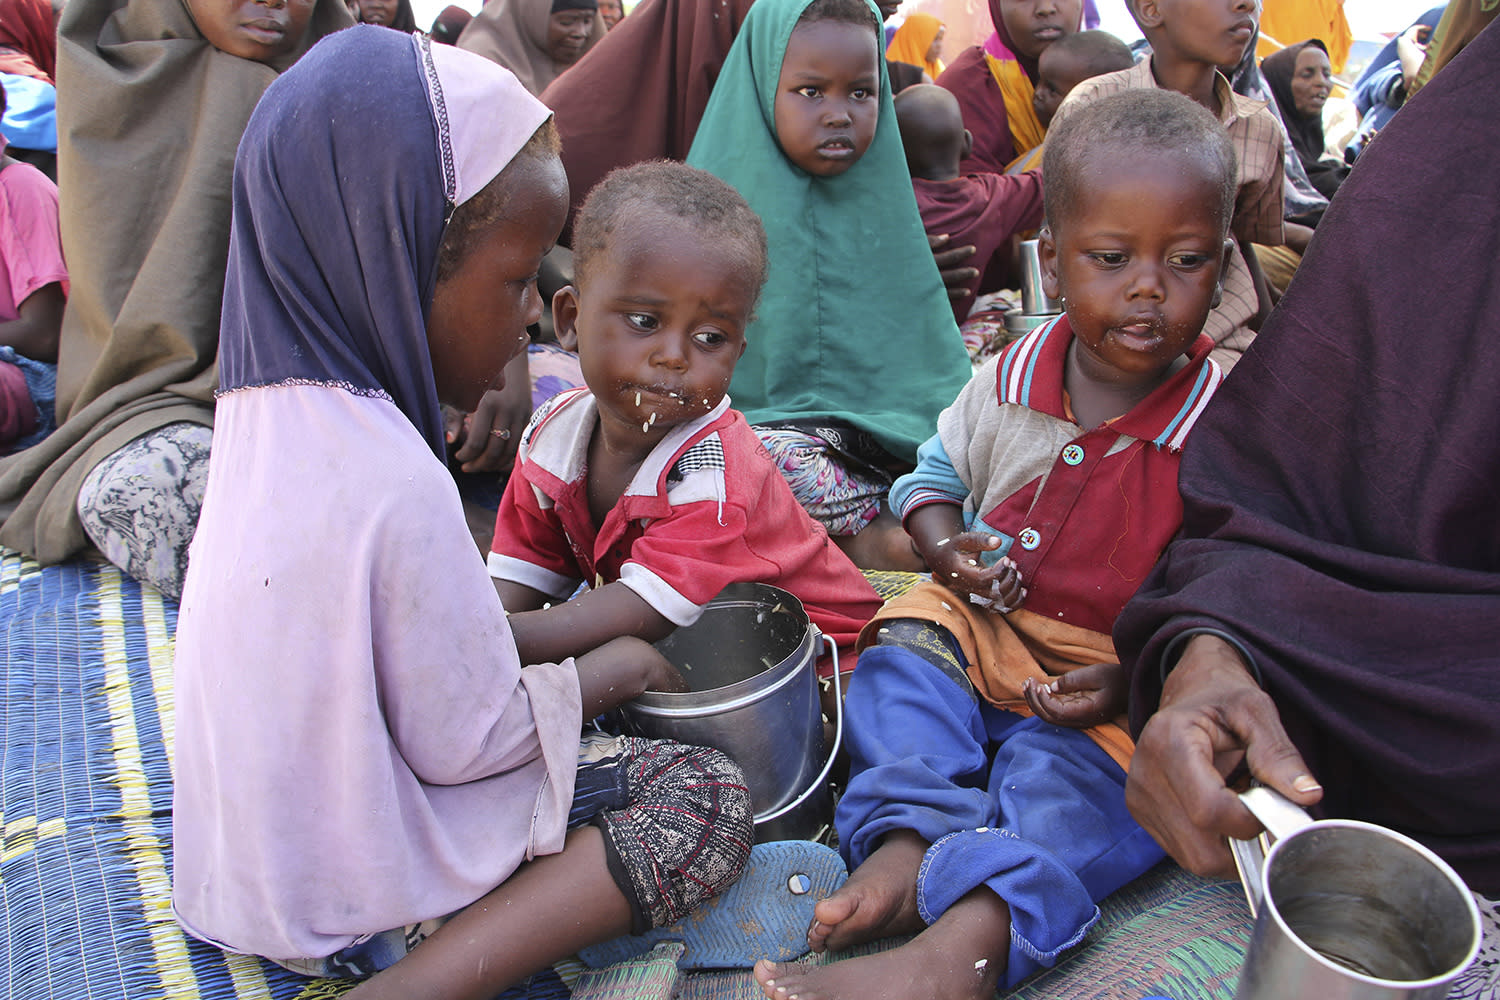 <p>Newly displaced children eat food as they sit on the ground, just outside of Mogadishu, in Somalia, Monday, March, 27, 2017. Somalia's drought is threatening 3 million lives, according to the U.N. In recent months, aid agencies have been scaling up their efforts but they say said more support is urgently needed to prevent the crisis from worsening. (Farah Abdi Warsameh/AP) </p>